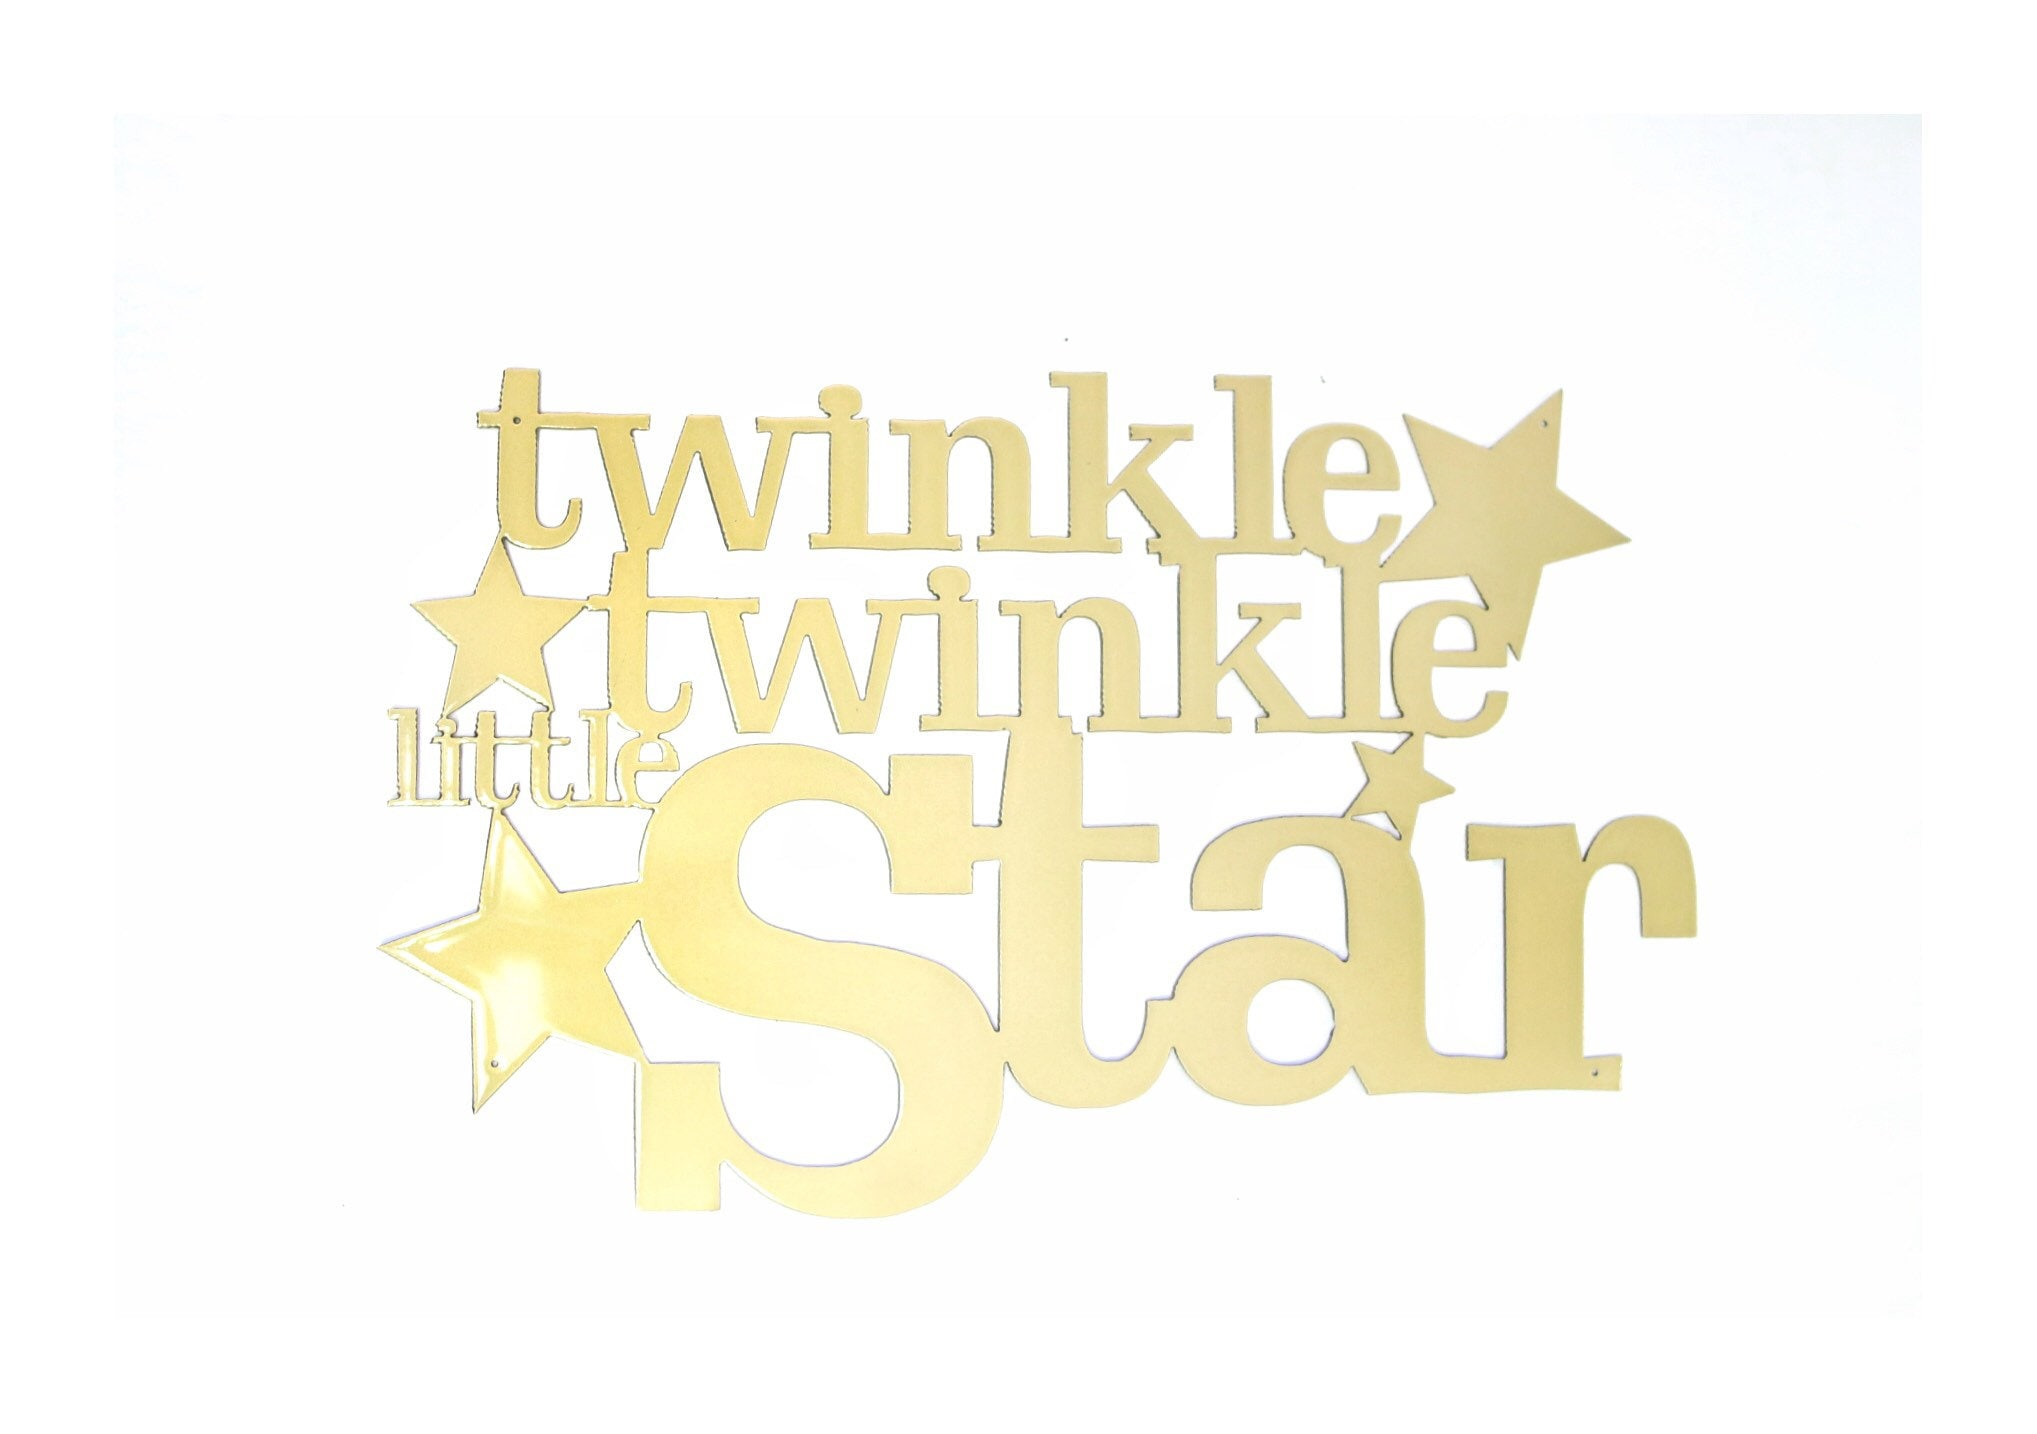 Twinkle Twinkle Little Star Metal Wall Art Sign / Decor Accent | Etsy